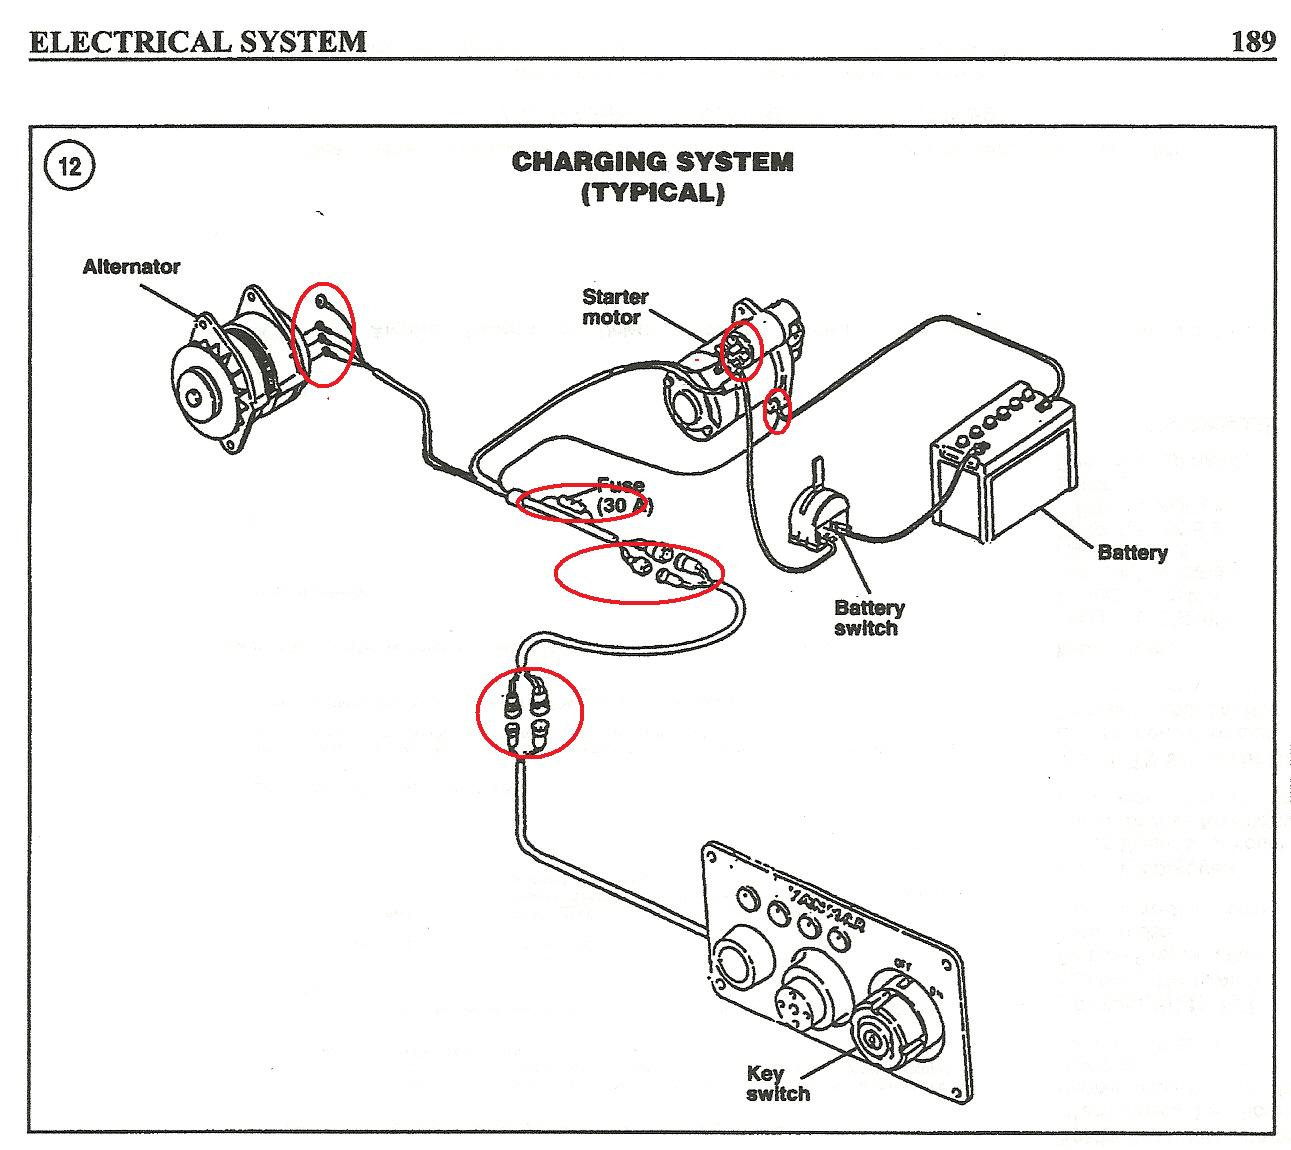 wiring diagram 1999 mercury outboard with 3owtc Yanmar 1gm I Changed Engine S Heat Breaker on Harley Davidson Fuel Pump Fuse Location moreover Stratos Boat Wiring Harness moreover 6hcxz 2010 60 Hp Mercury Big Foot 4 Stroke Engine likewise 8a62z Cant Select Defrost 98 Avalon likewise Virago Hitachi Carburetors.